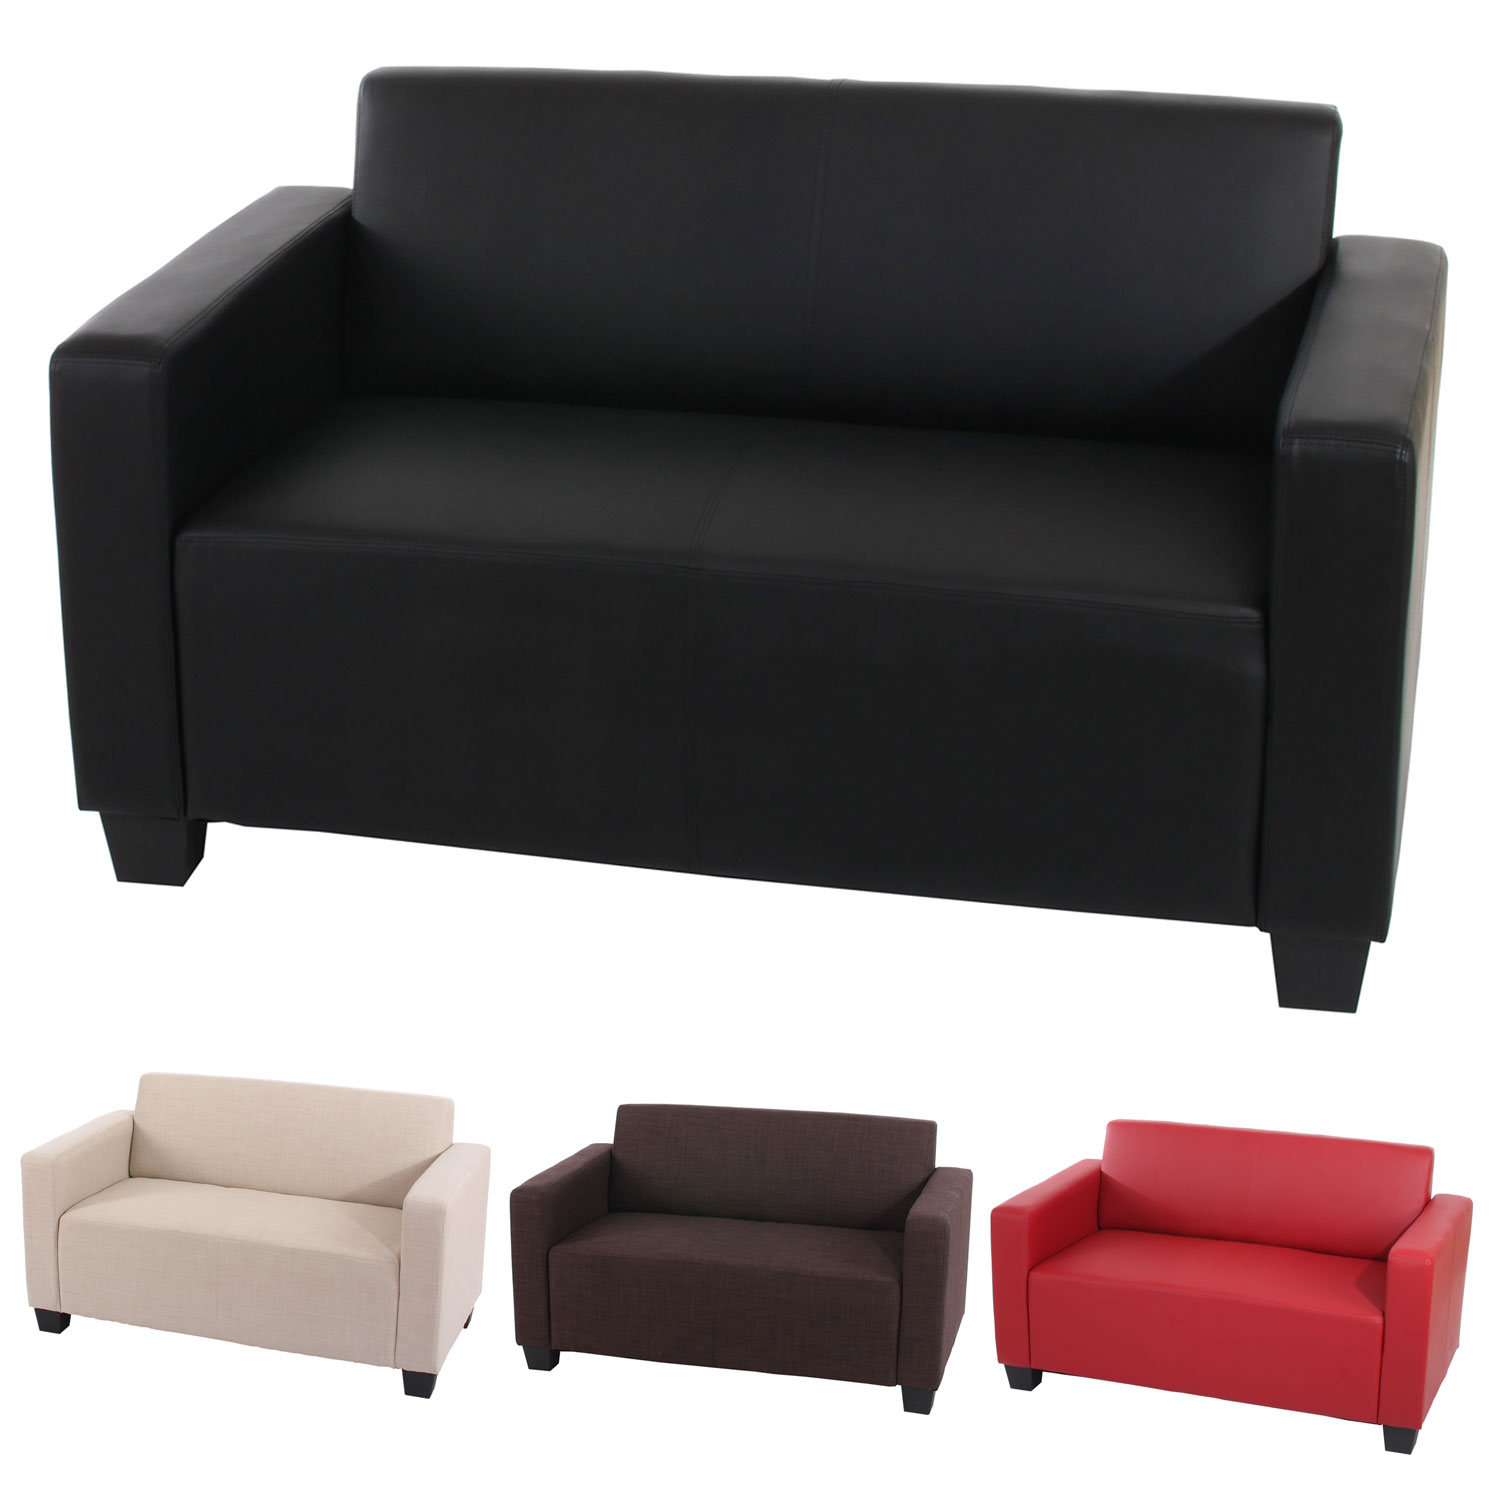 2er sofa couch loungesofa lyon textil kunstleder creme rot schwarz braun ebay. Black Bedroom Furniture Sets. Home Design Ideas